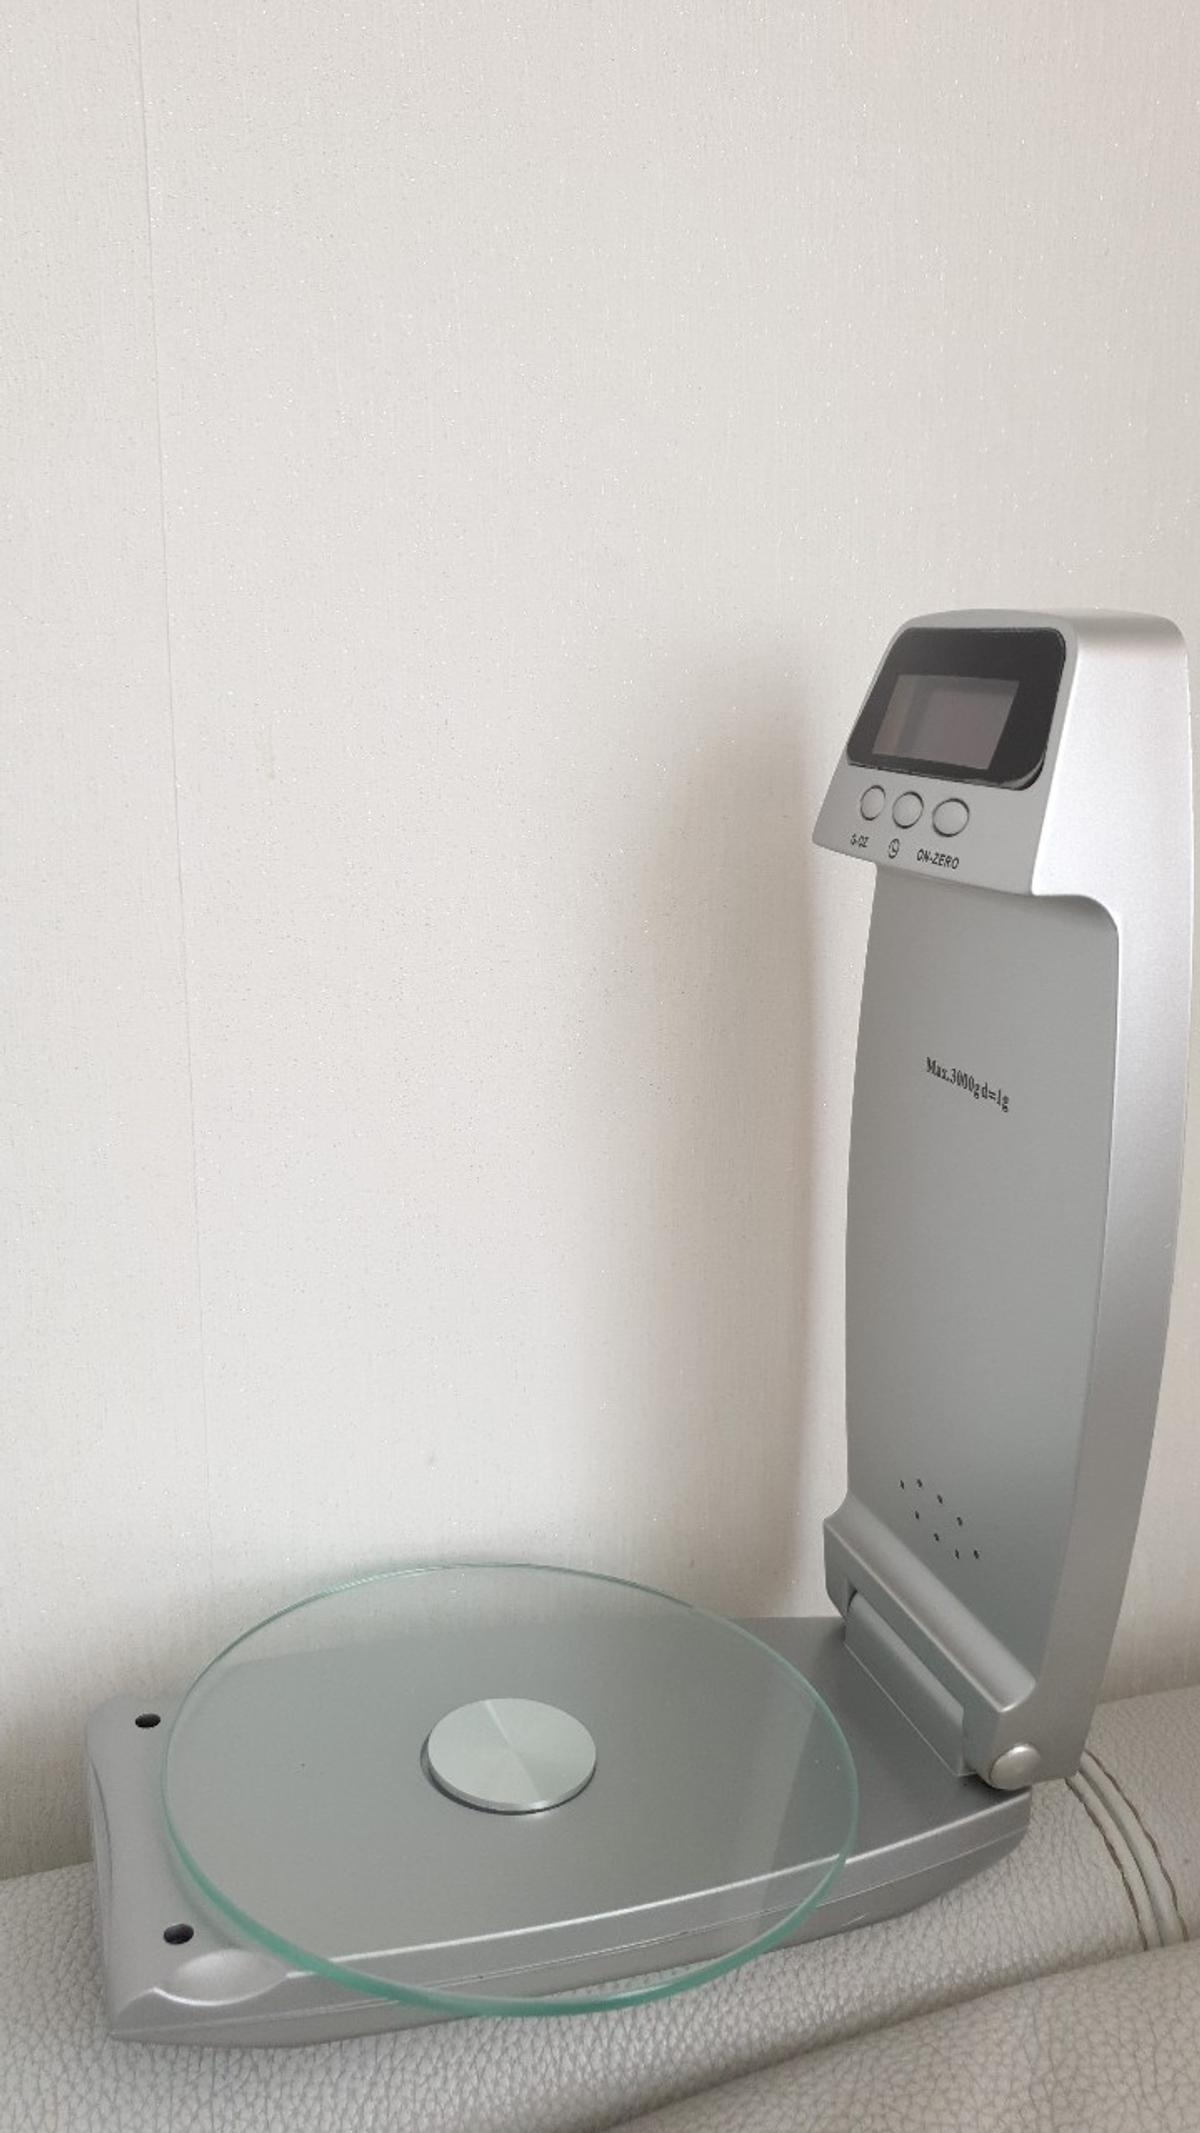 Digital Wall Mounted Kitchen Scales Plus In Sm4 London For 12 00 For Sale Shpock